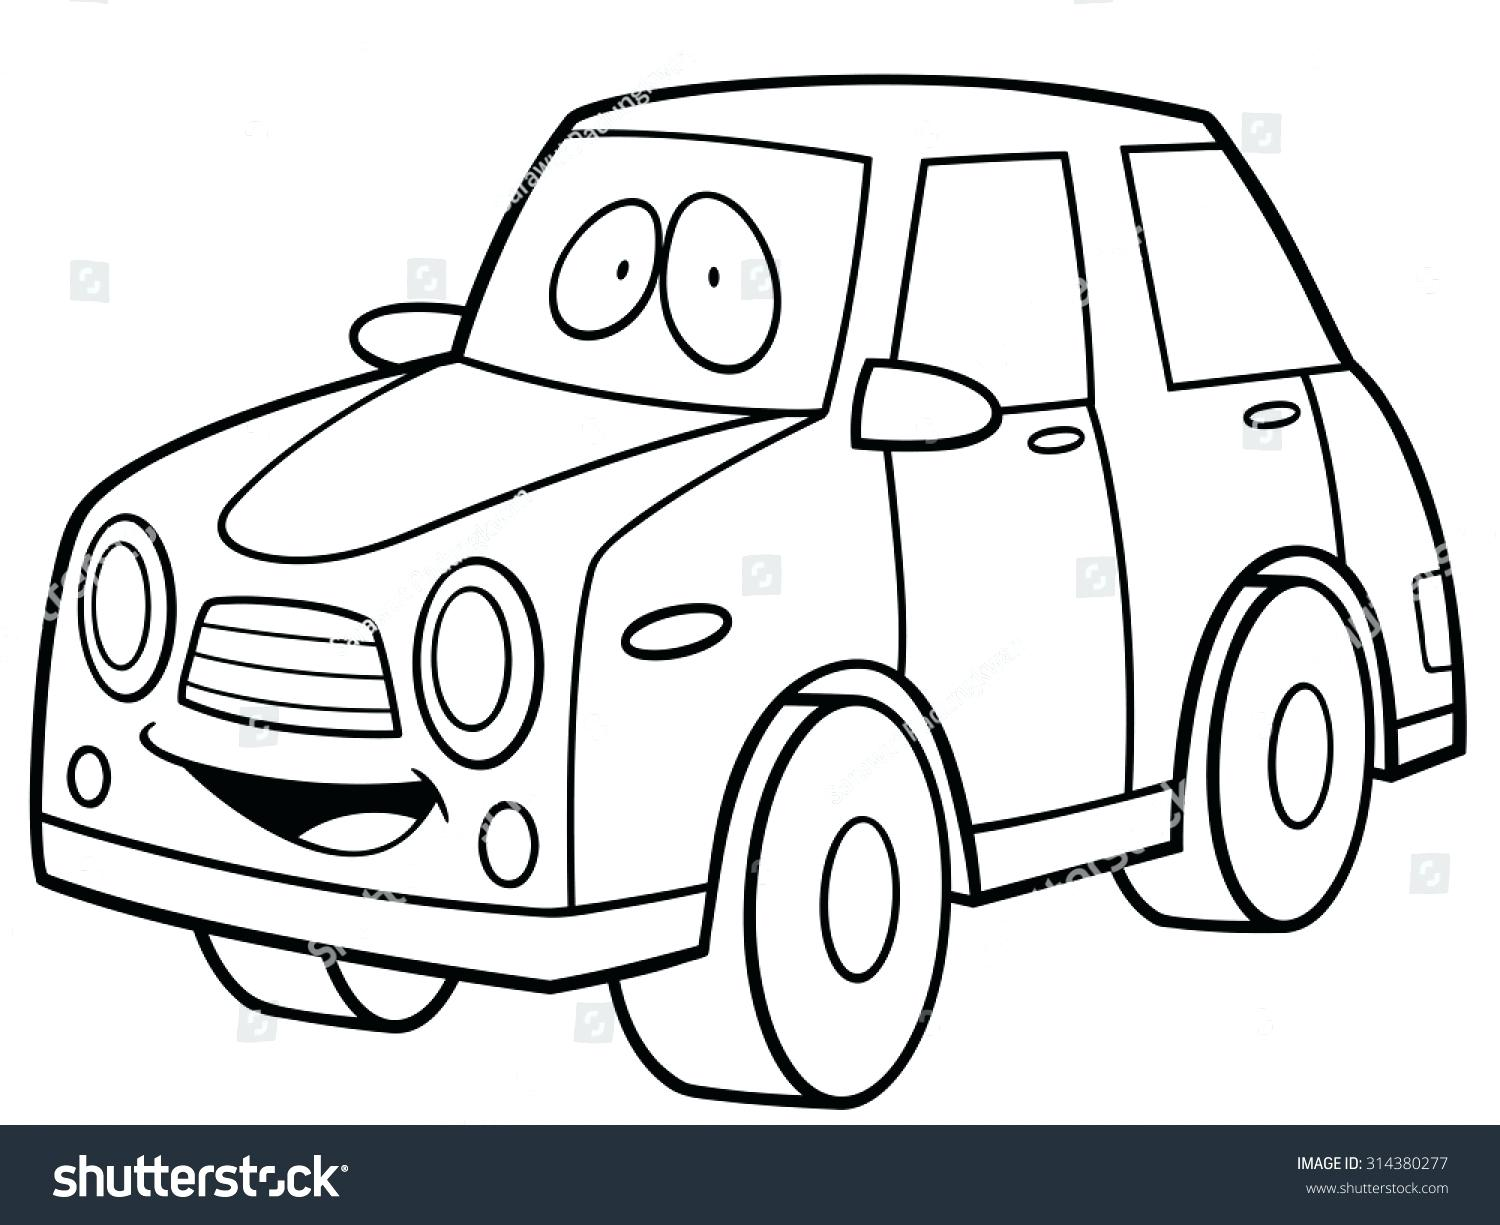 1500x1225 Car Coloring Book Cars Printable Happy 103 Pages Pixar Cartoon